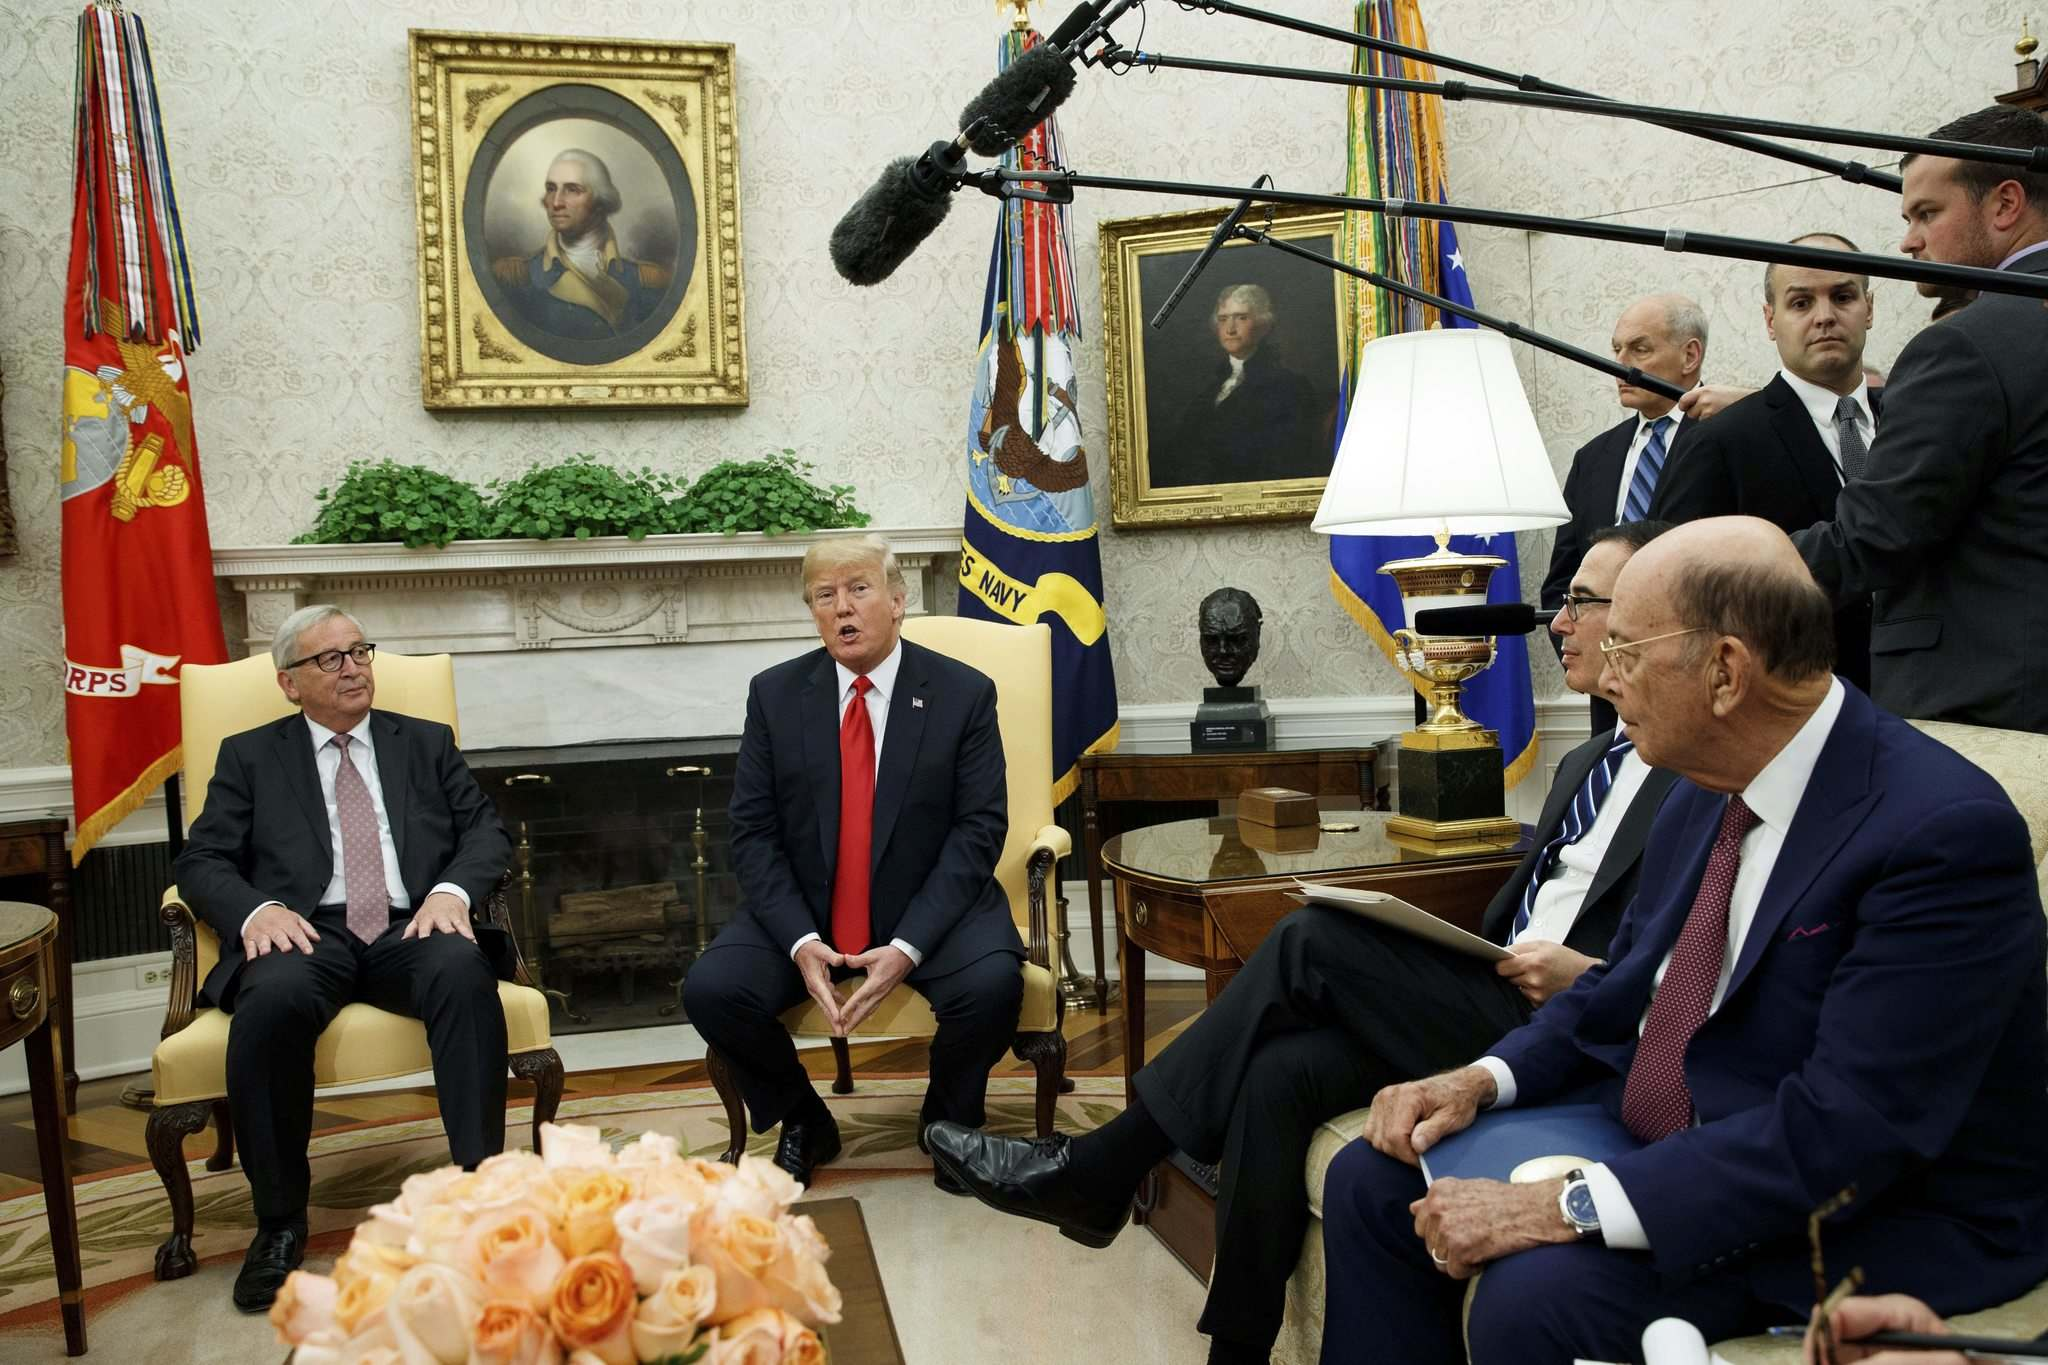 Evan Vucci / The Associated Press</p><p>U.S. President Donald Trump meets with European Commission president Jean-Claude Juncker in the Oval Office on July 25.</p>